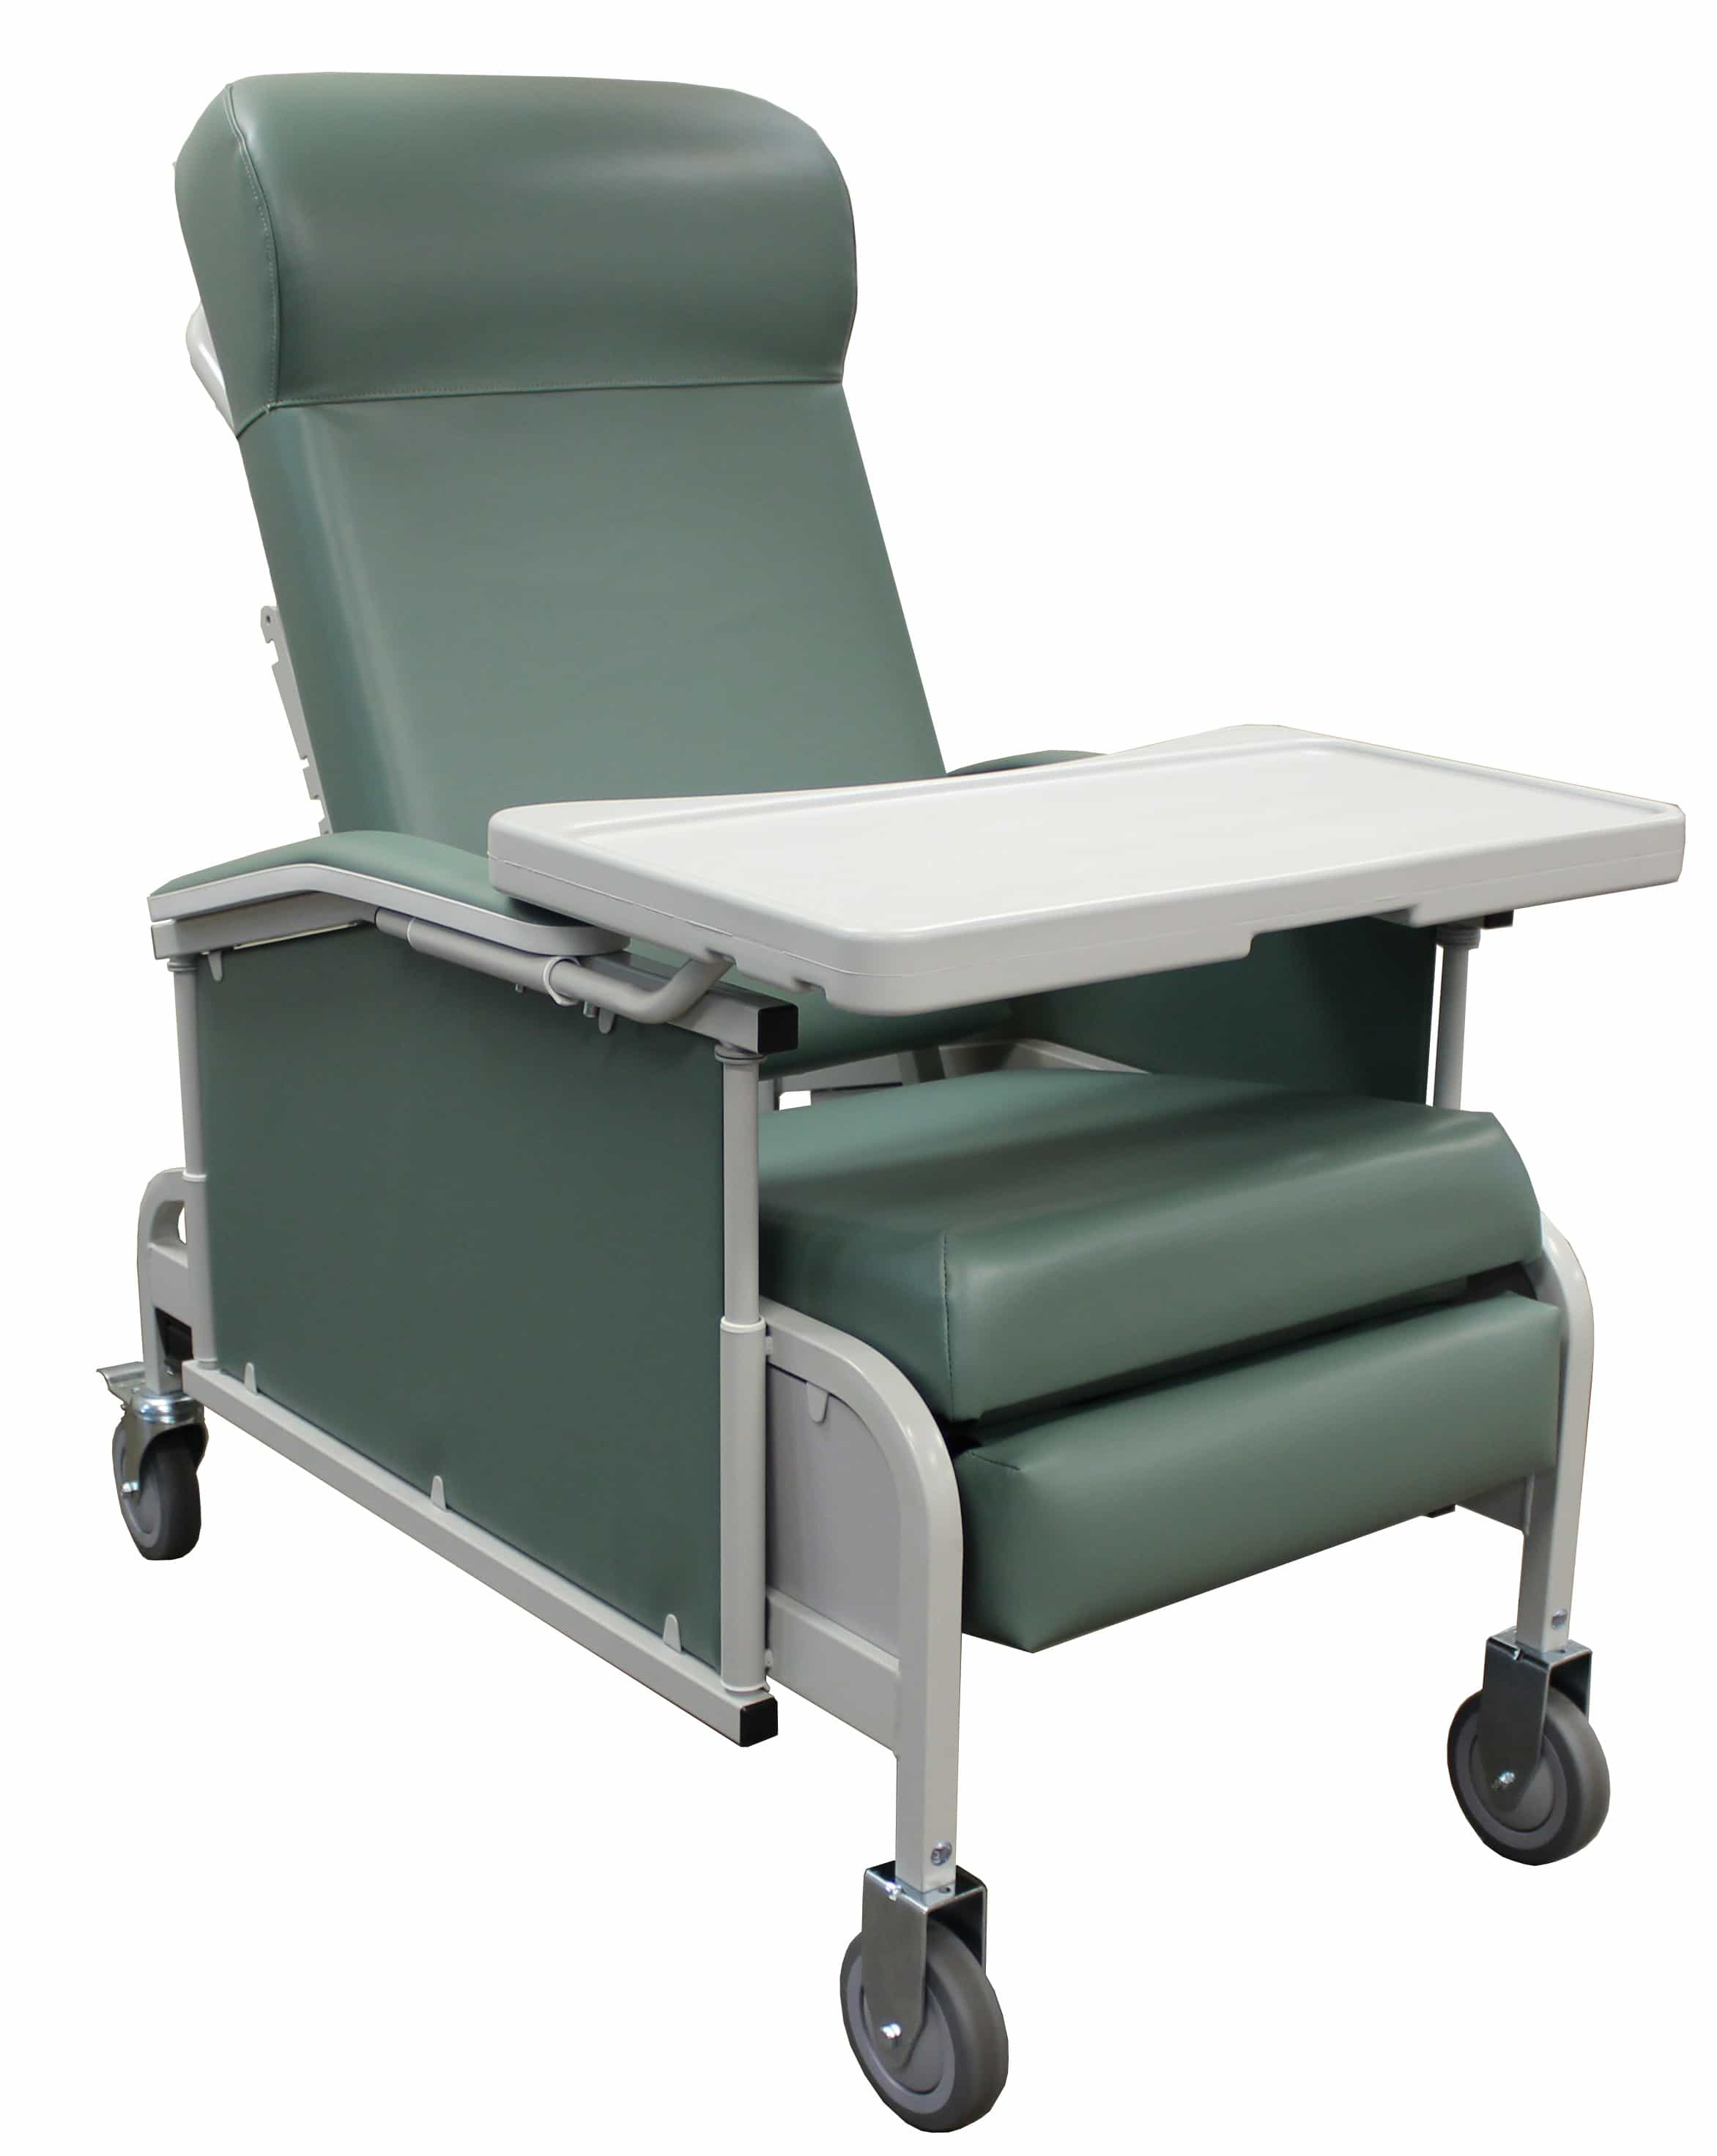 Drop Arm Convalescent Recliner with Tray  sc 1 st  Alderman Acres Manufacturing & Clinical Recliners u0026 Chairs - Non-Trendelenburg | Alderman Acres ... islam-shia.org